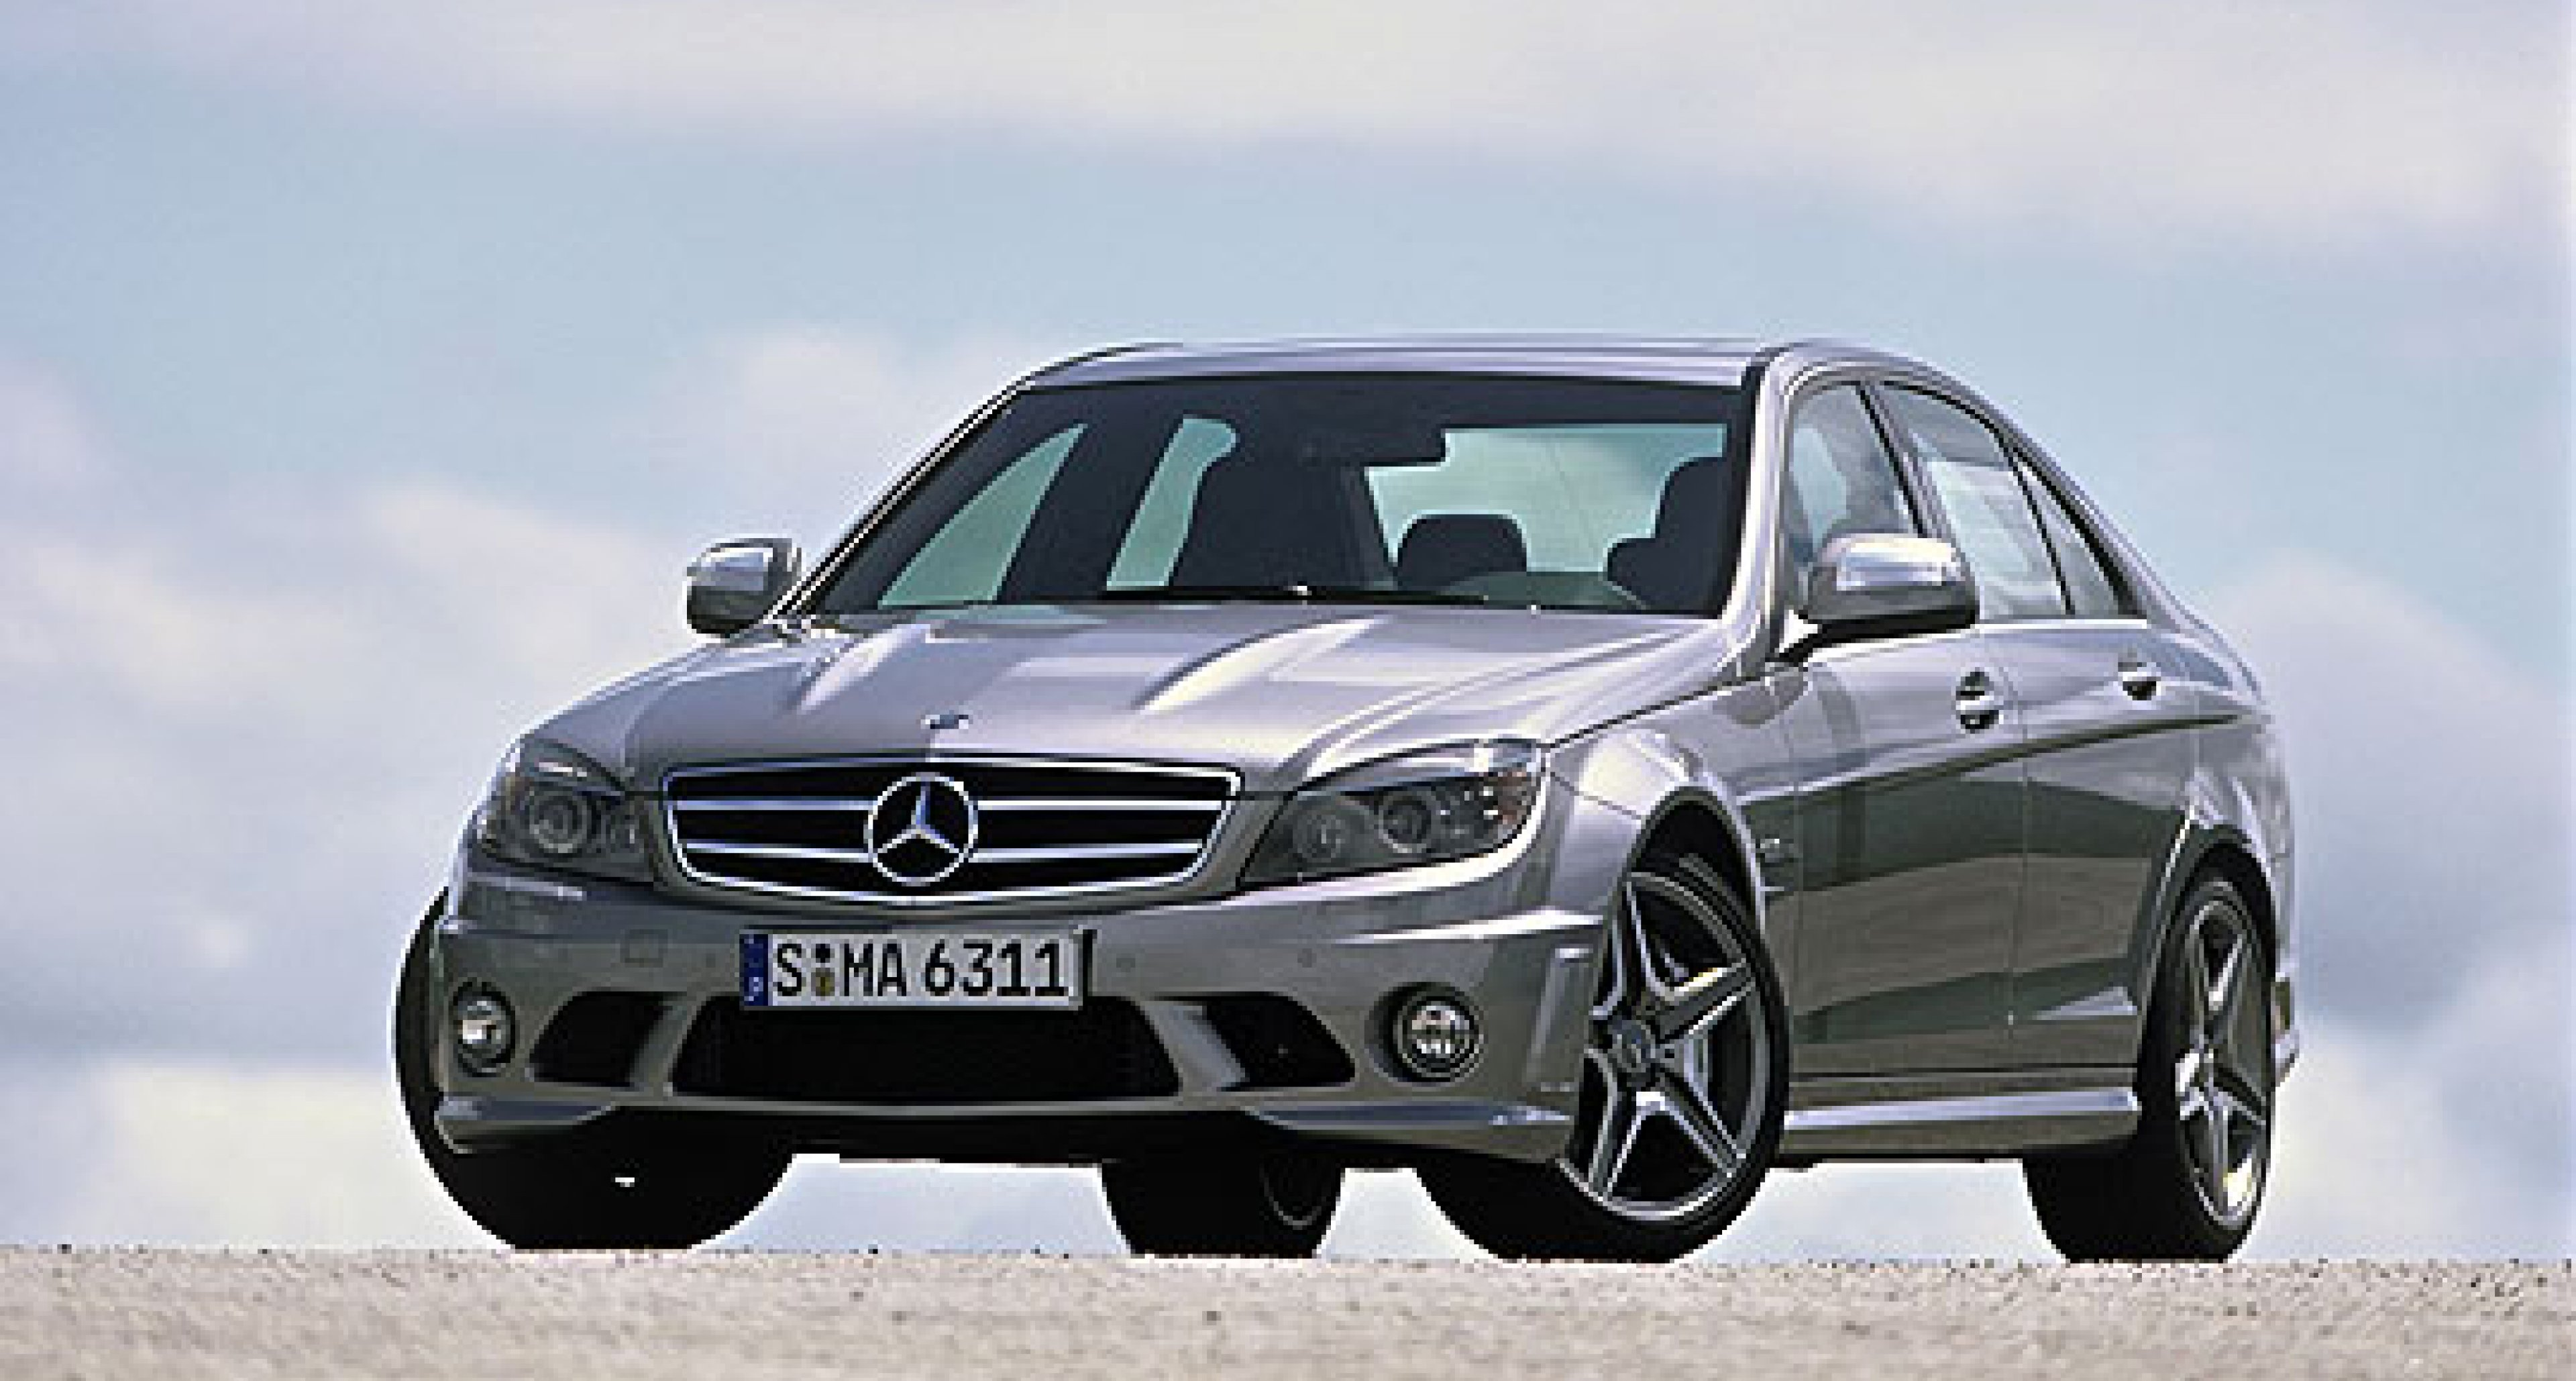 A Mercedes C-Class... but not as we know it